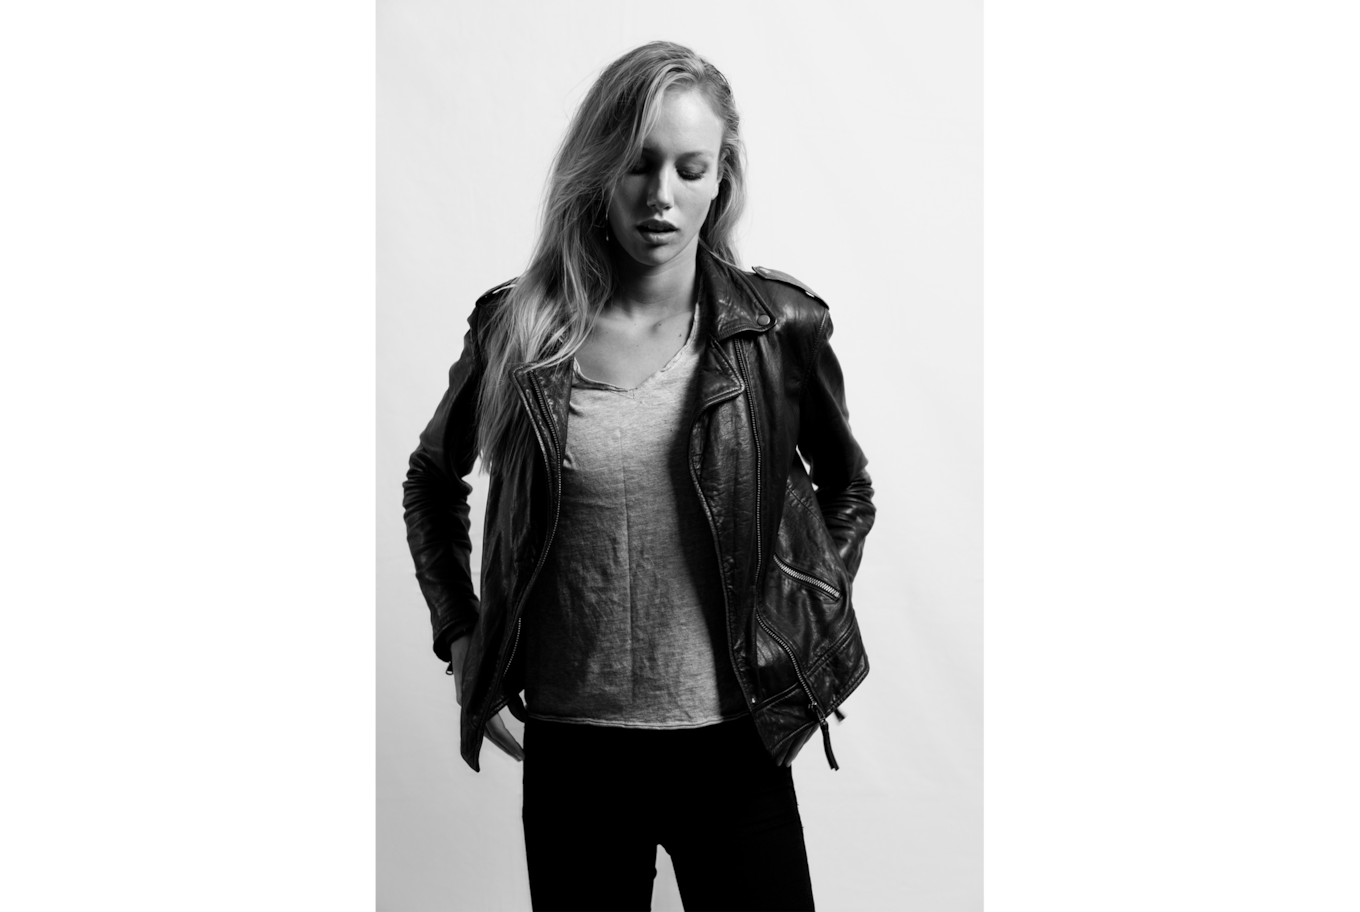 daniel gossmann sony alpha 7RM3 black and white image of a model wearing a leather jacket staring at the floor